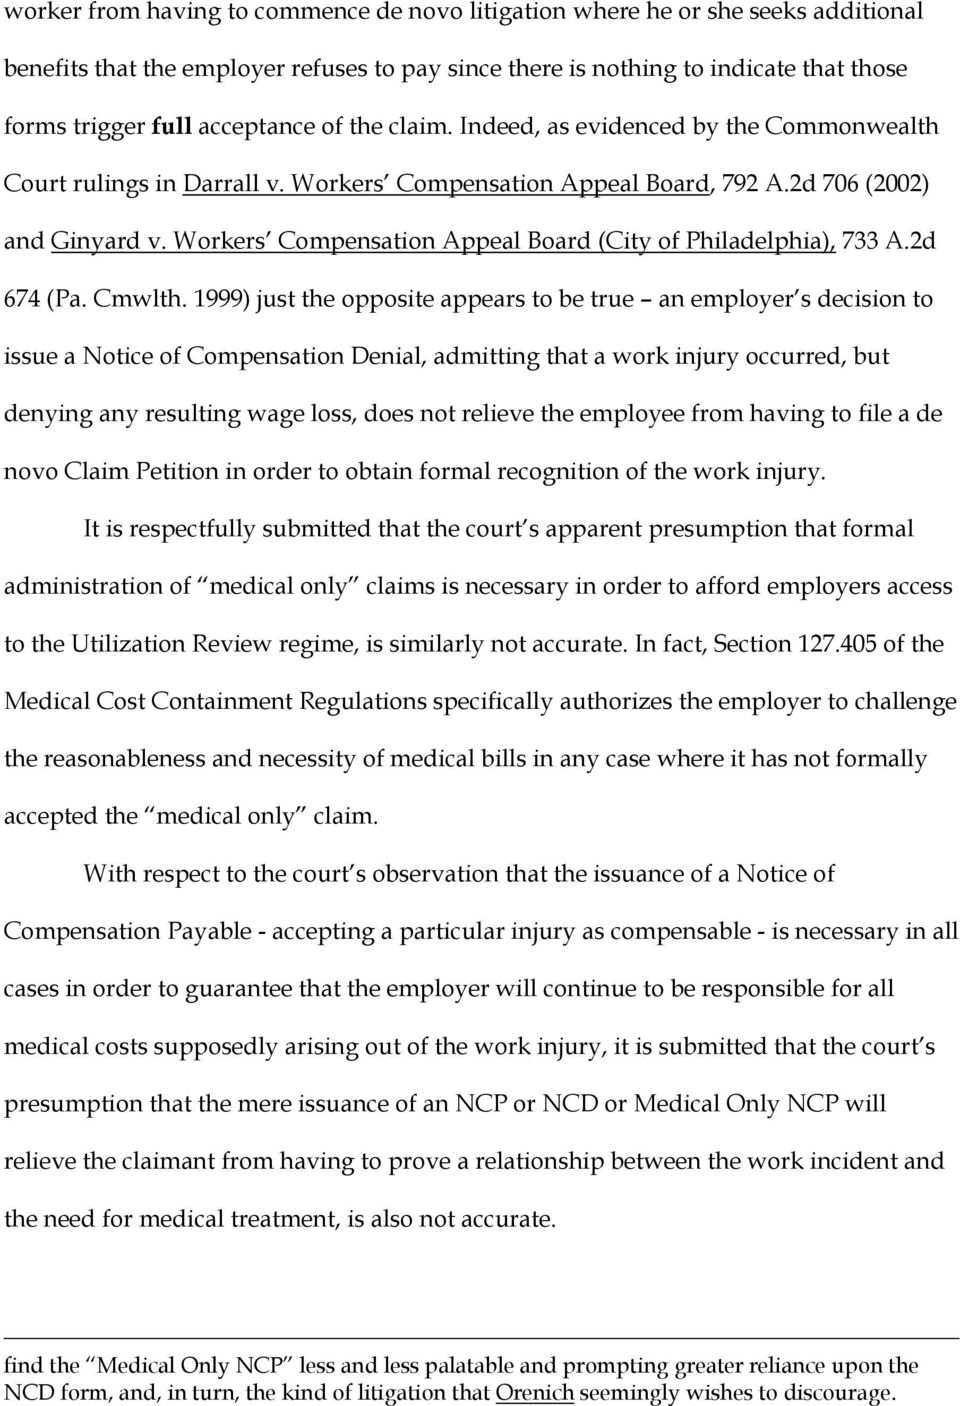 Workers Compensation Appeal Board (City of Philadelphia), 733 A.2d 674 (Pa. Cmwlth.